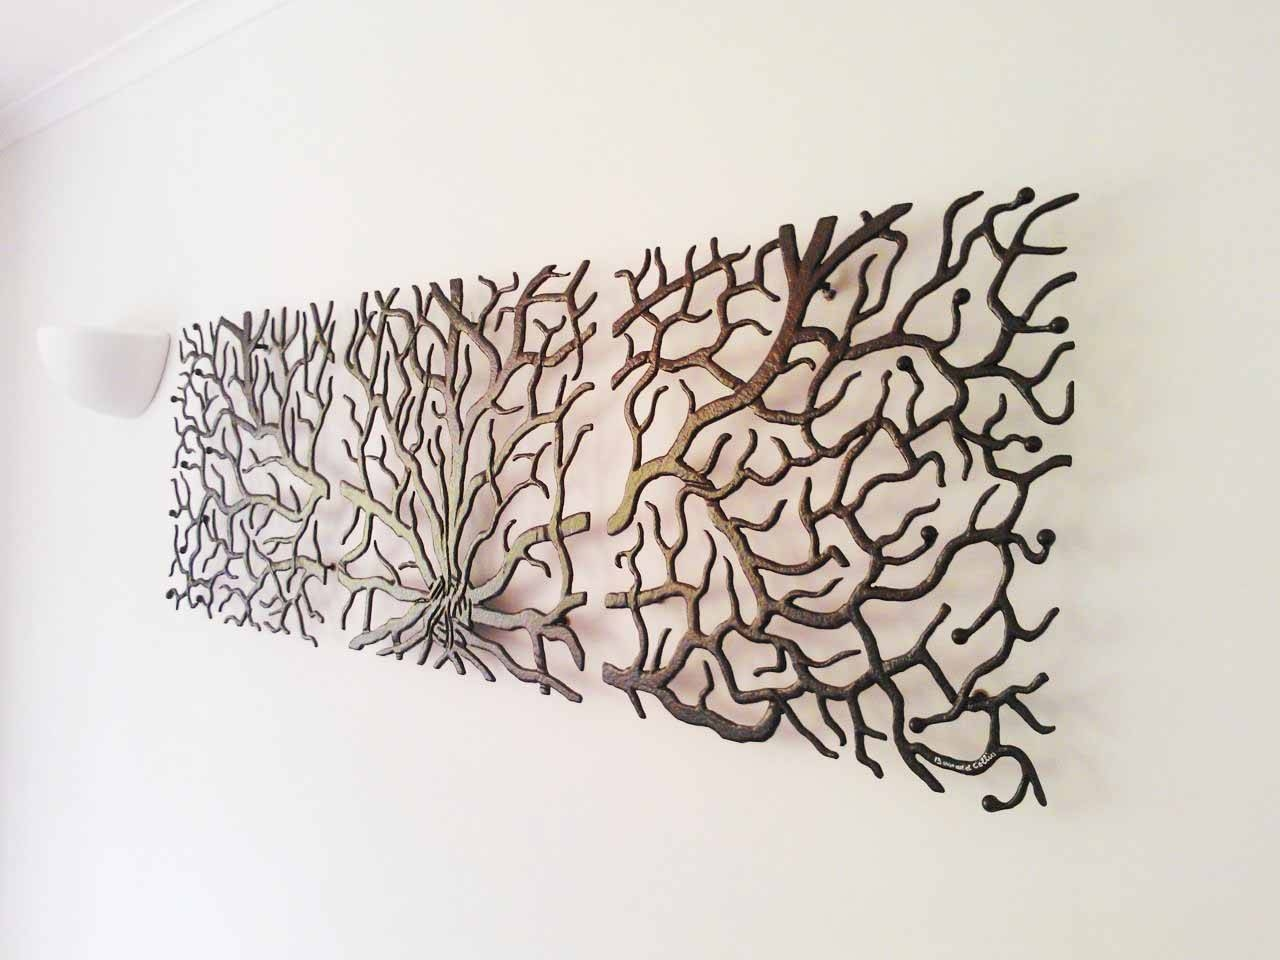 Articles With Tree Of Life Metal Wall Art Sculptures Home Decor Regarding Latest Metal Tree Wall Art Sculpture (View 4 of 20)